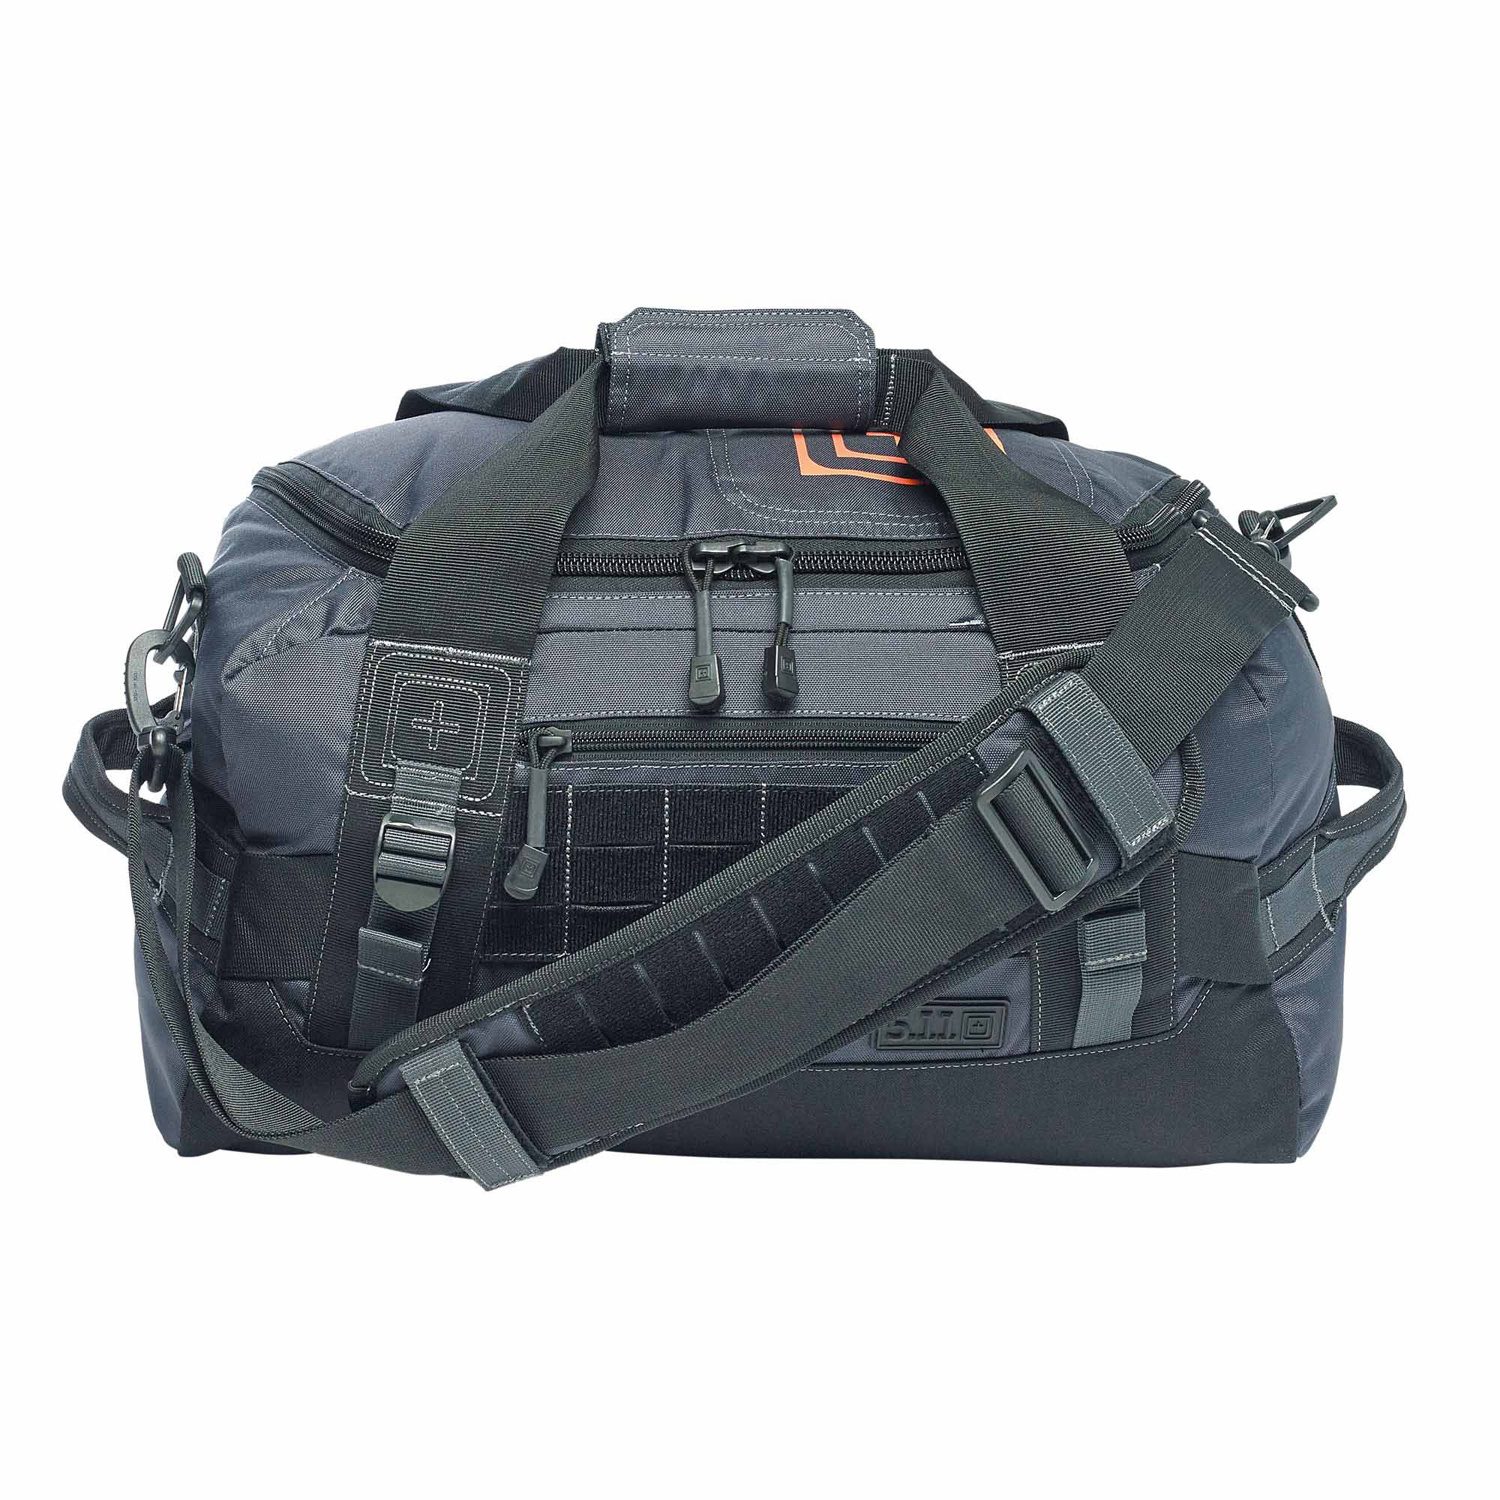 5.11 Tactical NBT Duffle MIKE Nylon Double Tap